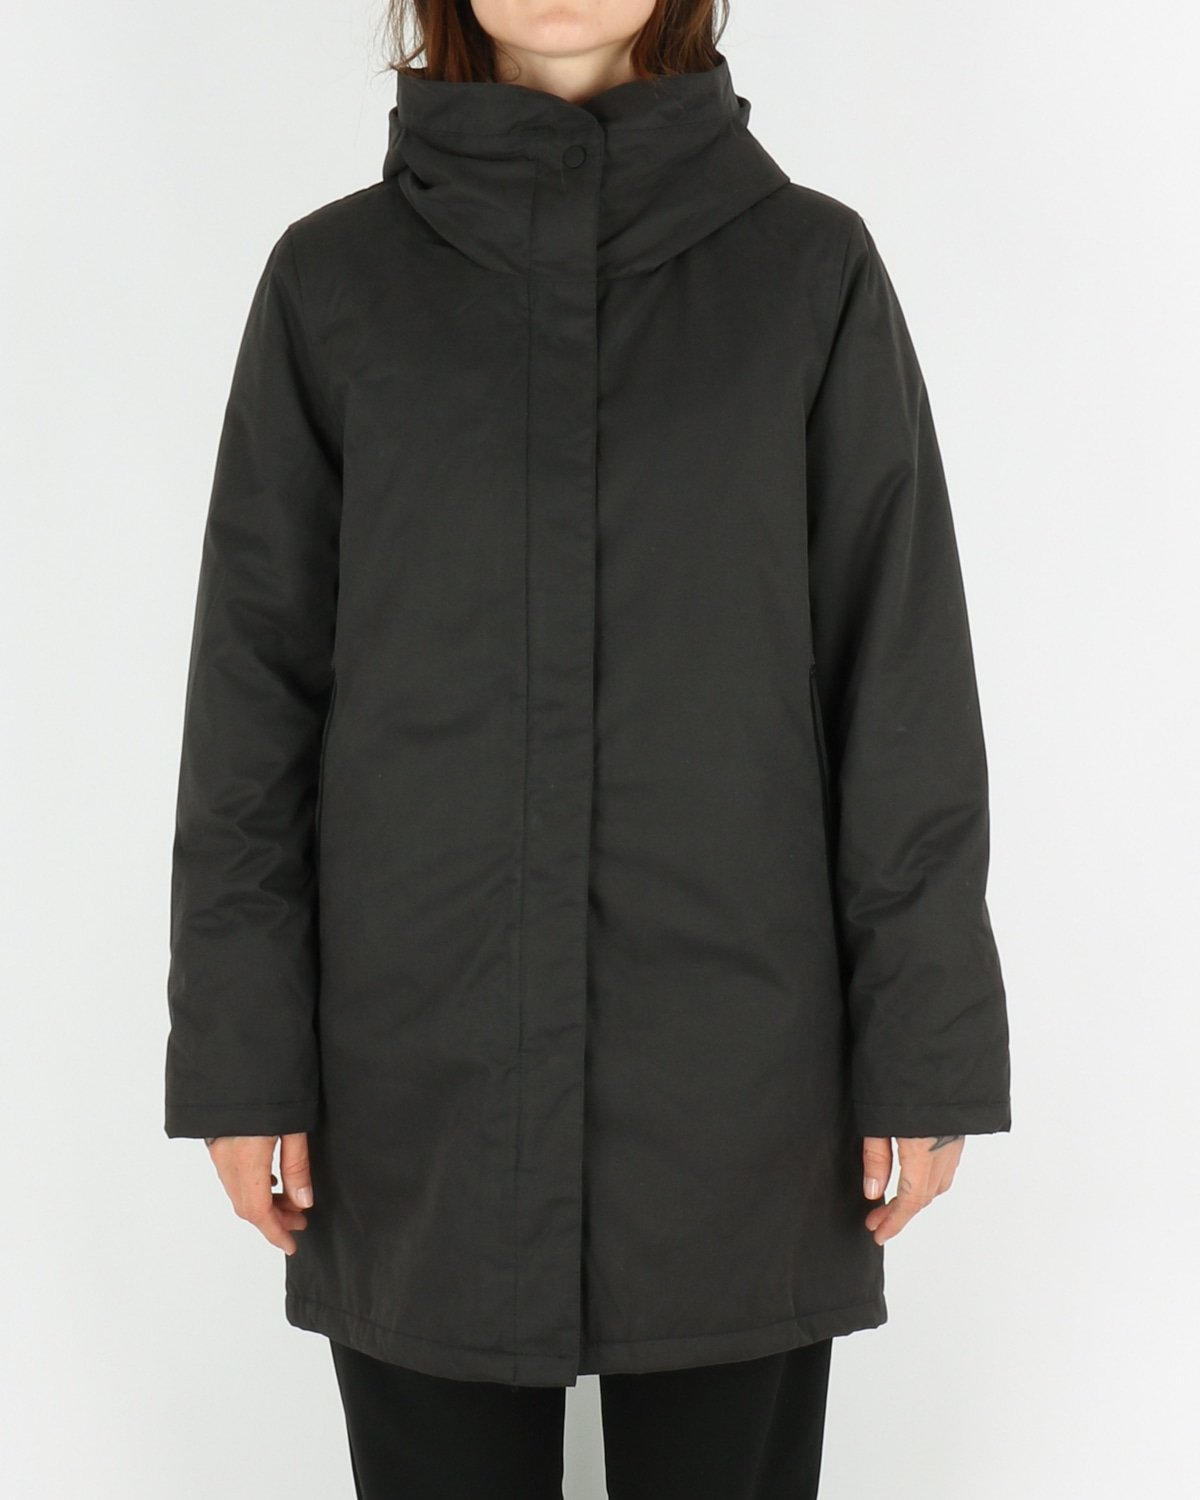 selfhood_parka jacket 77133_black_1_5